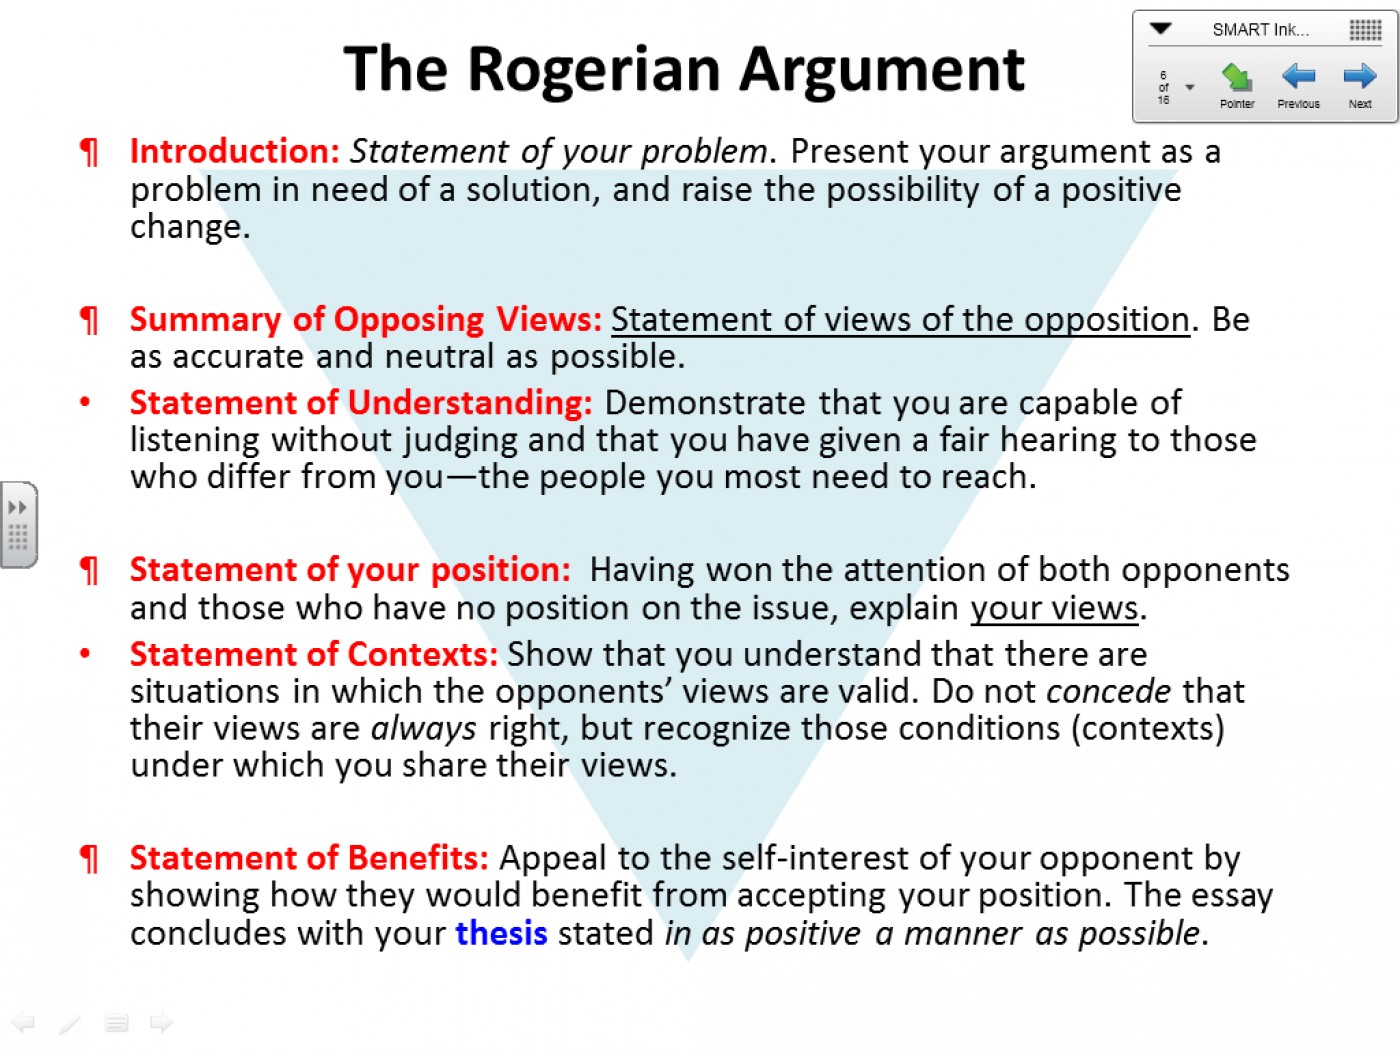 002 Essay Example1 Best Rogerian Argument Example Sentence Abortion Style Topics 1400